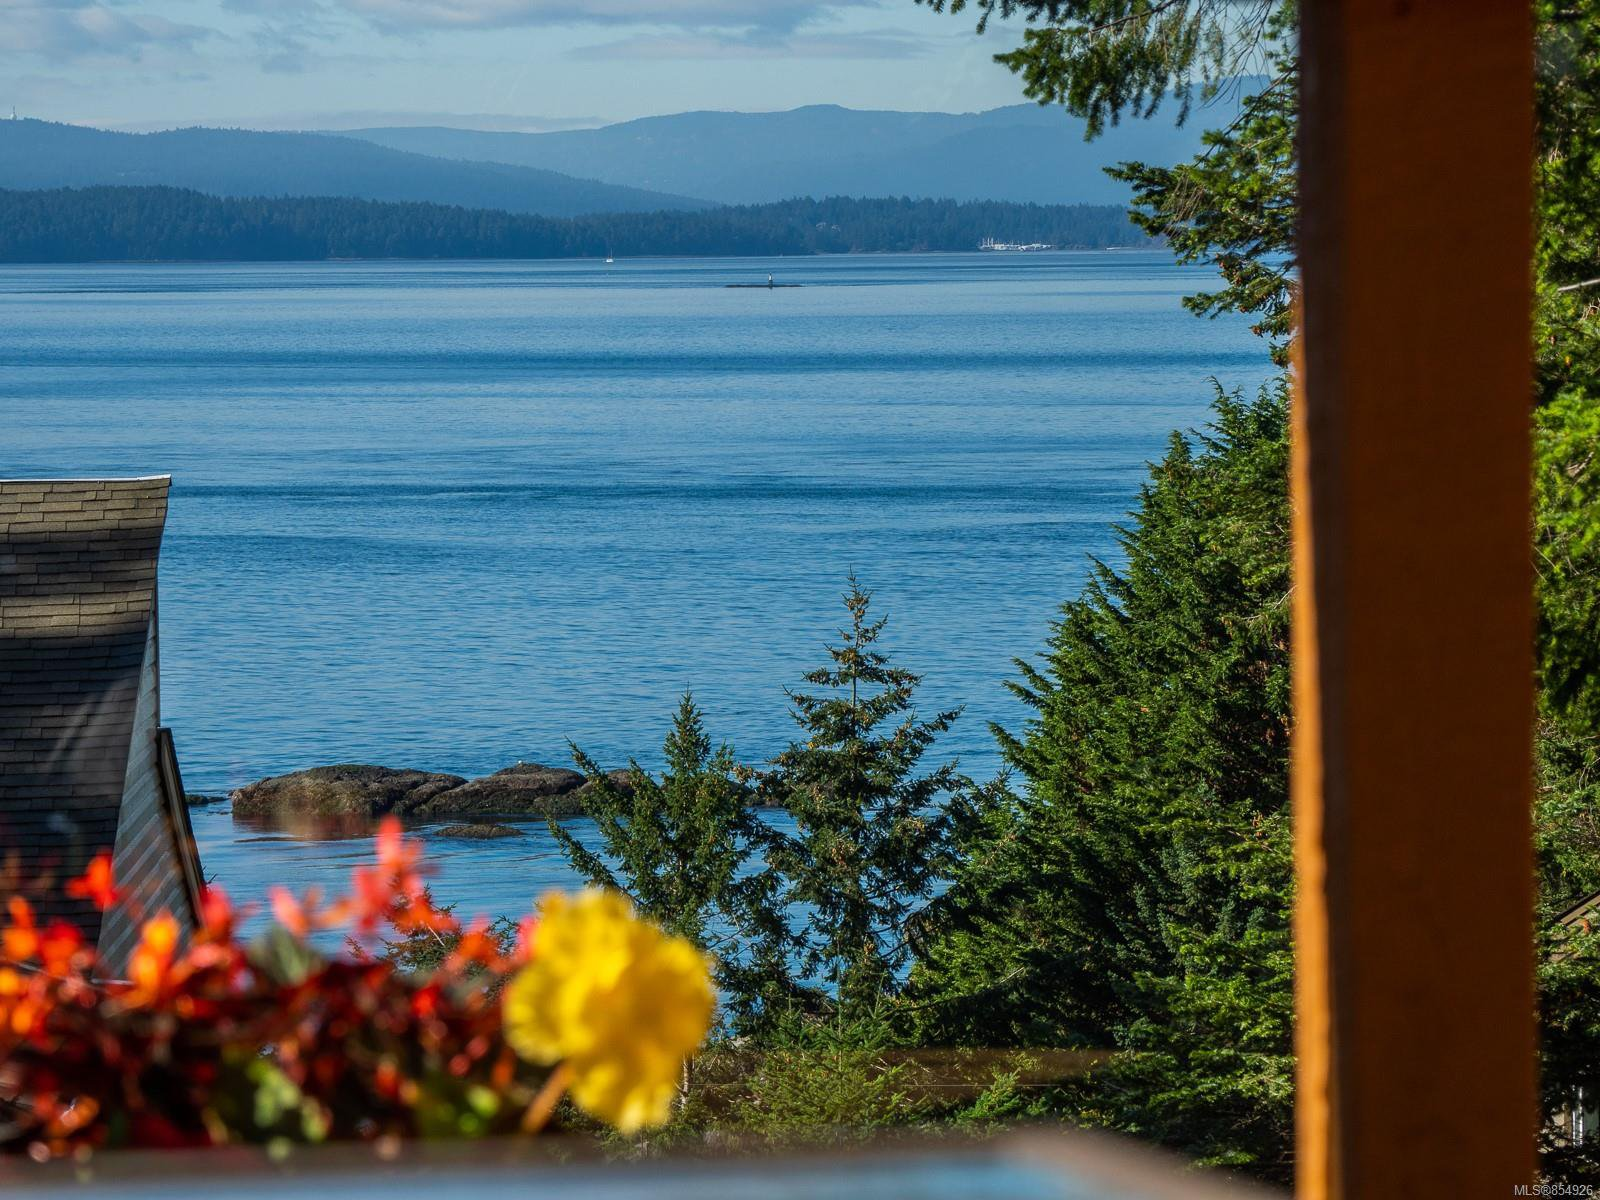 Main Photo: 3721 Privateers Rd in : GI Pender Island Single Family Detached for sale (Gulf Islands)  : MLS®# 854926